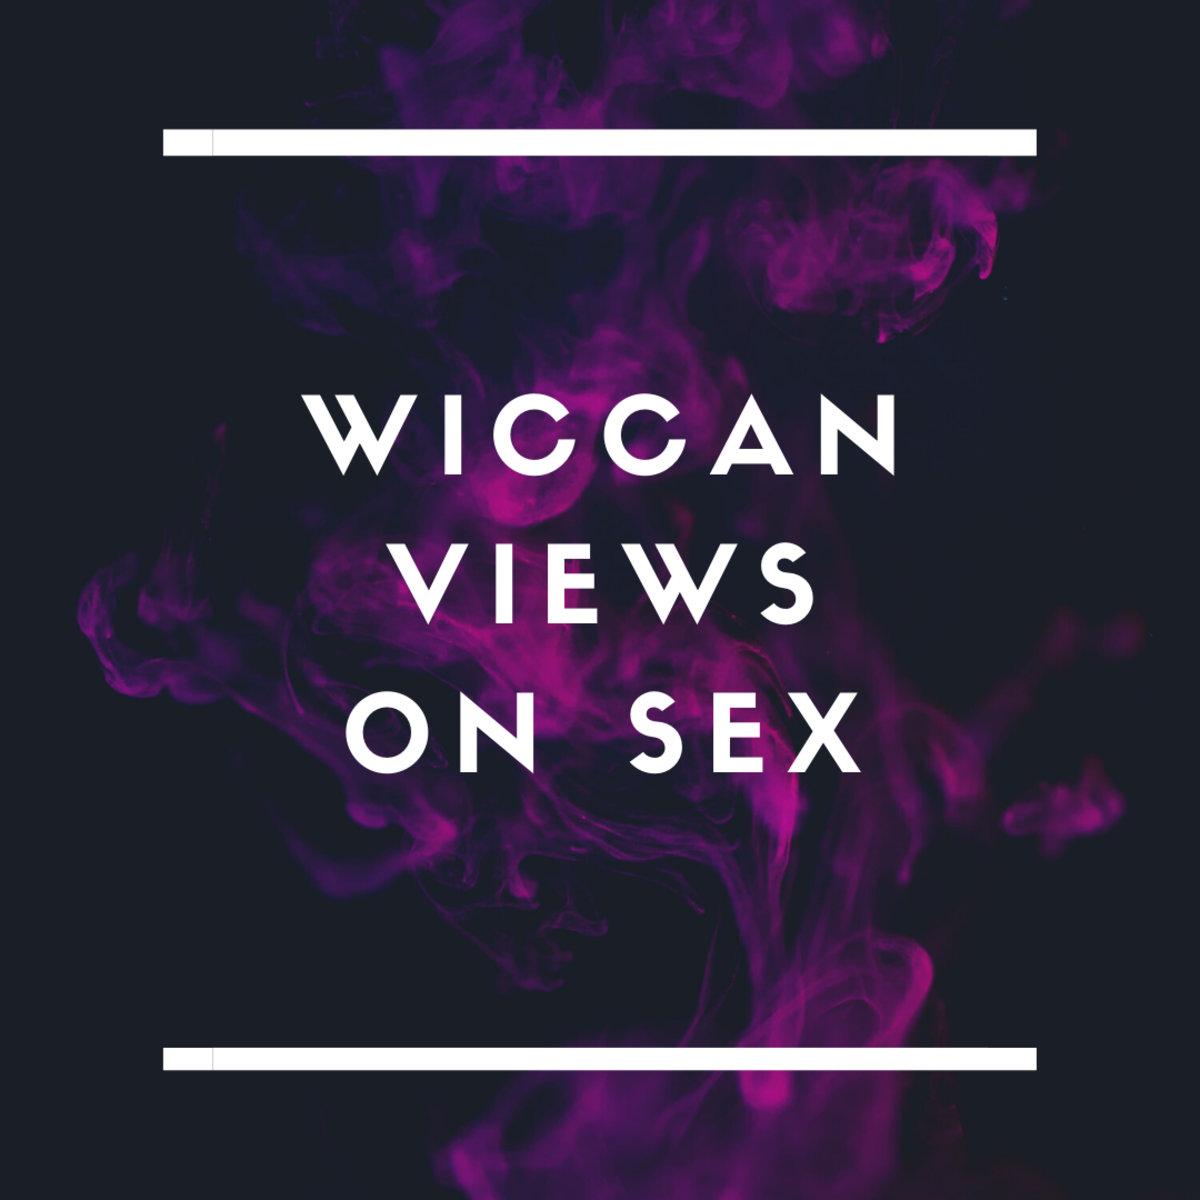 Learn all about how Wiccans view sex in their practice.